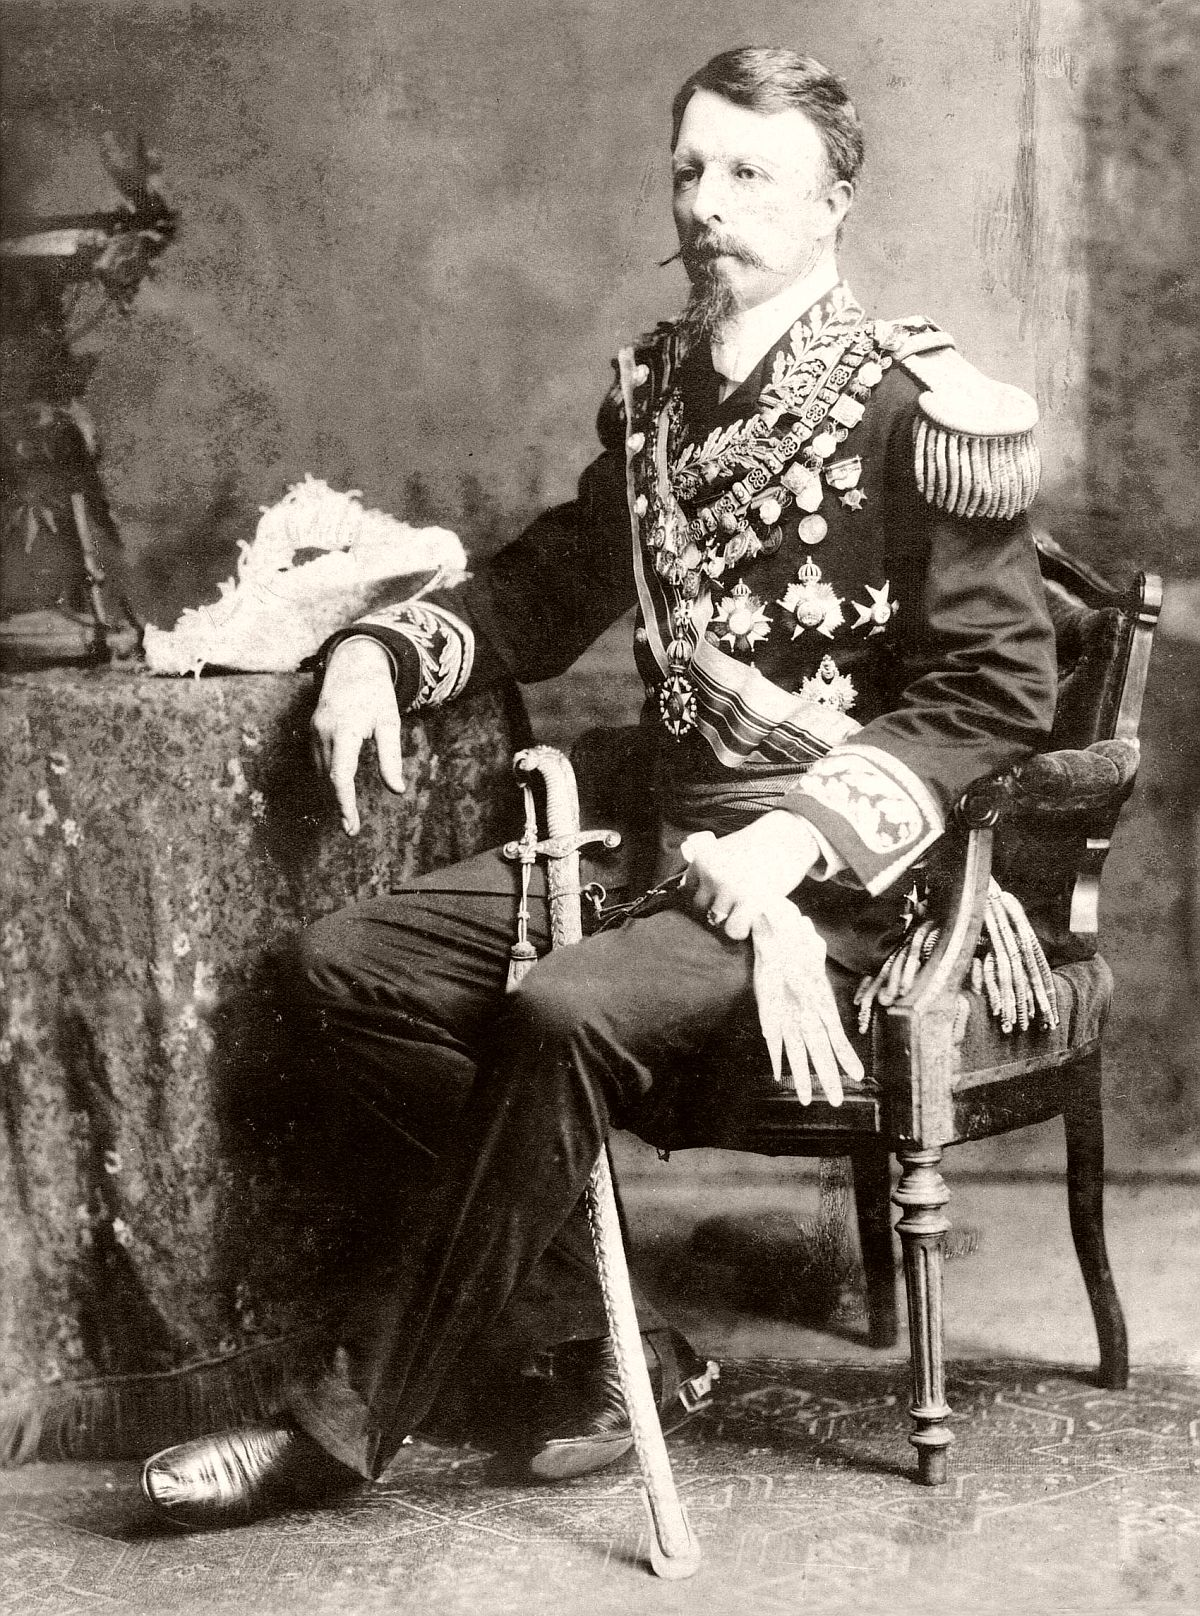 Prince Gaston of Orléans, Count of Eu or Dom Gastão de Orleães, Marshal of the Army. 1882